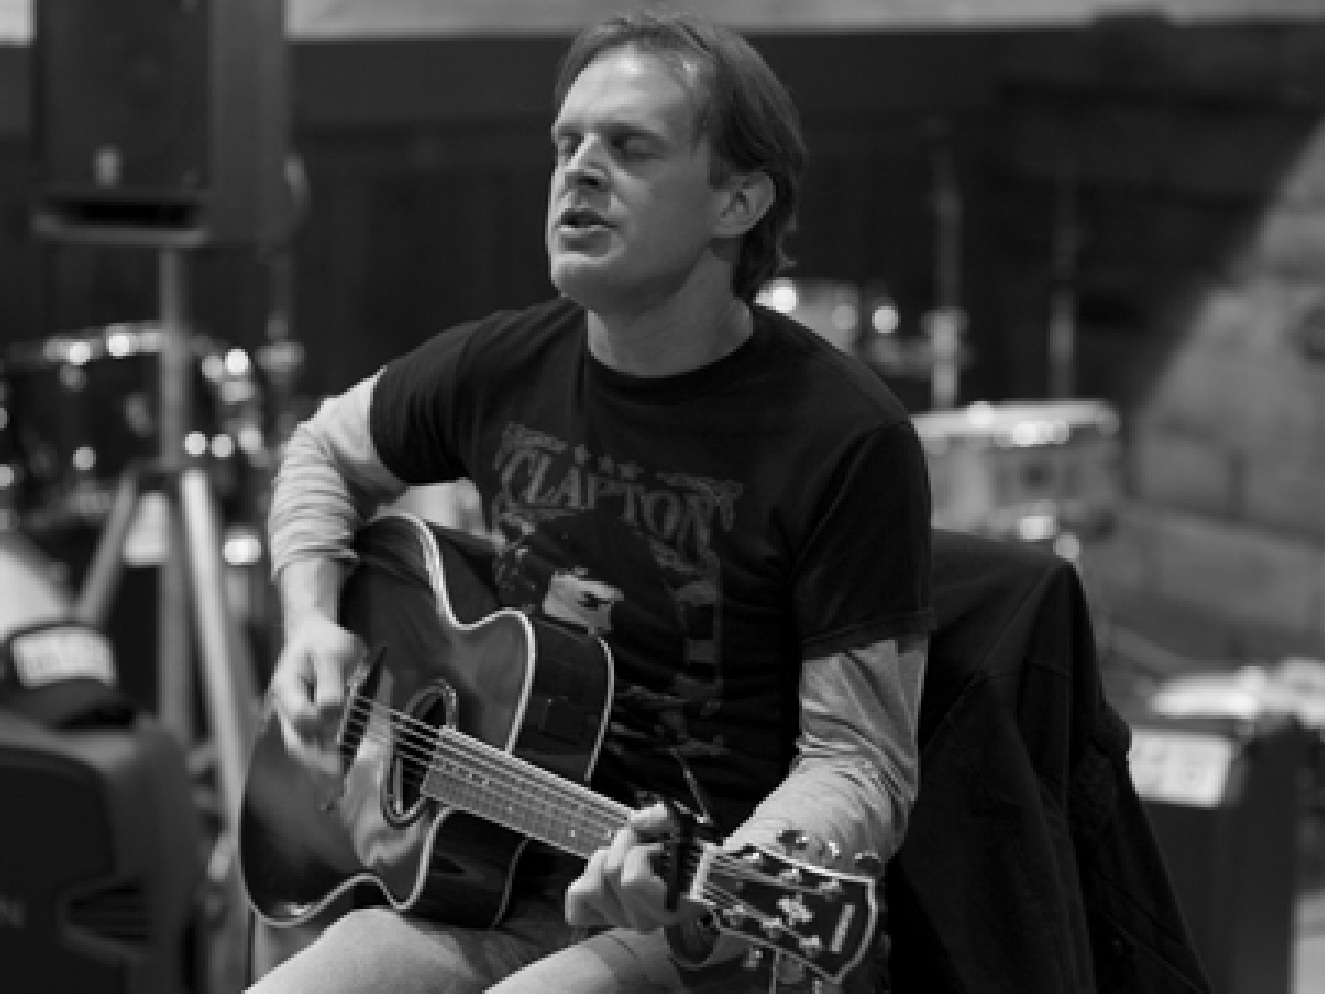 Joe Bonamassa at Mom's Music before his March 6th show at... - Kentuckiana Blues News, April 2009